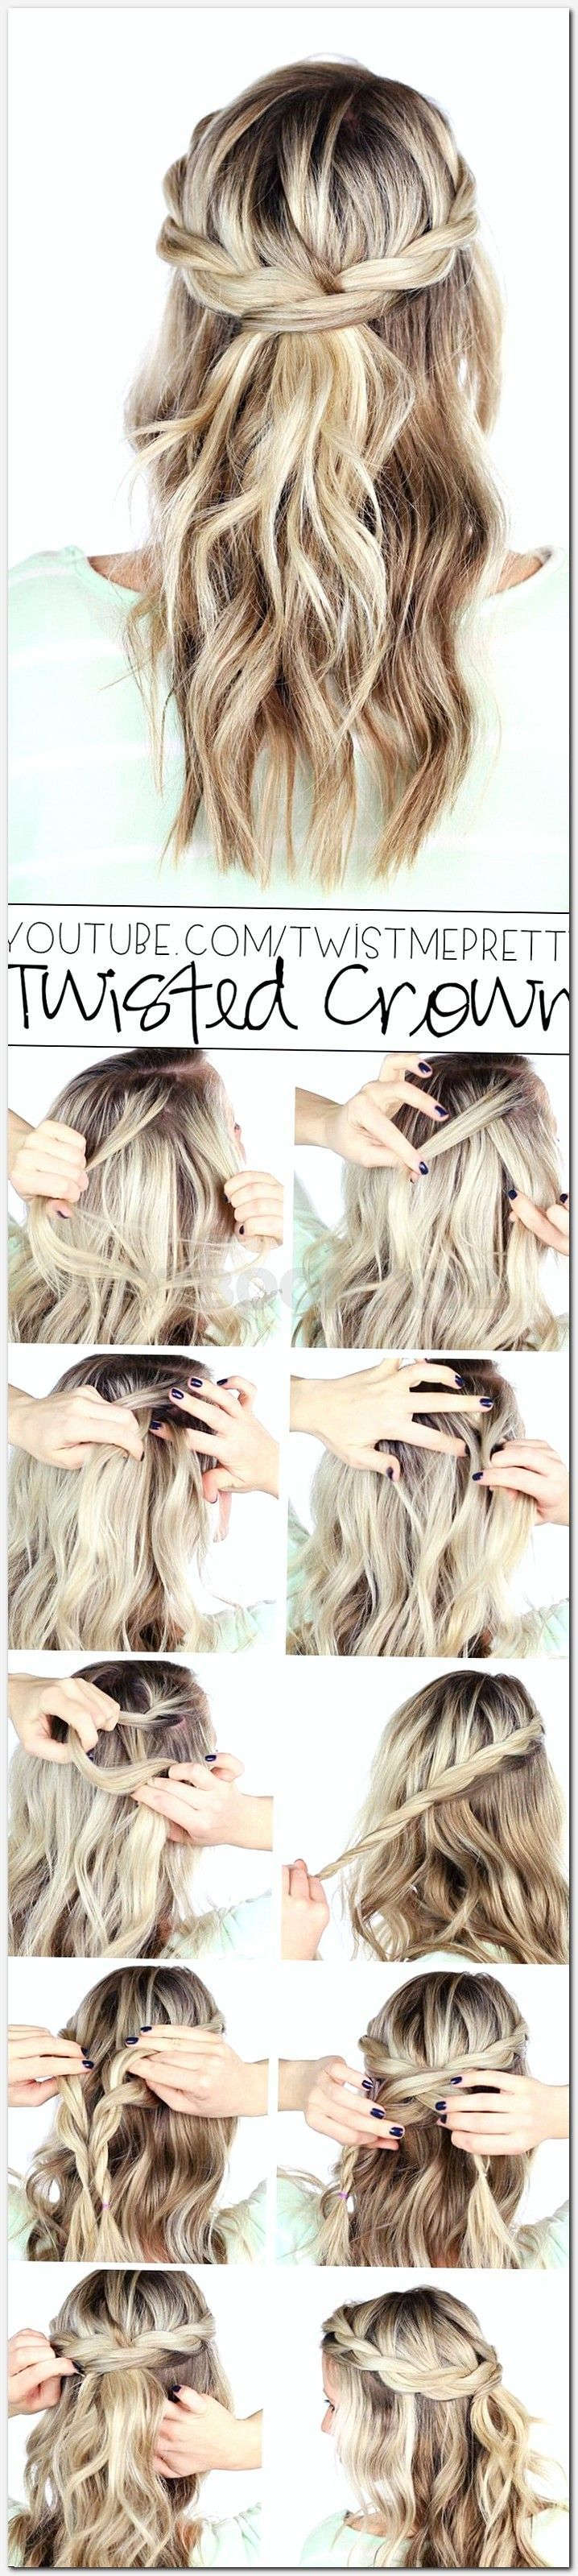 38 best Hairstyles images on Pinterest